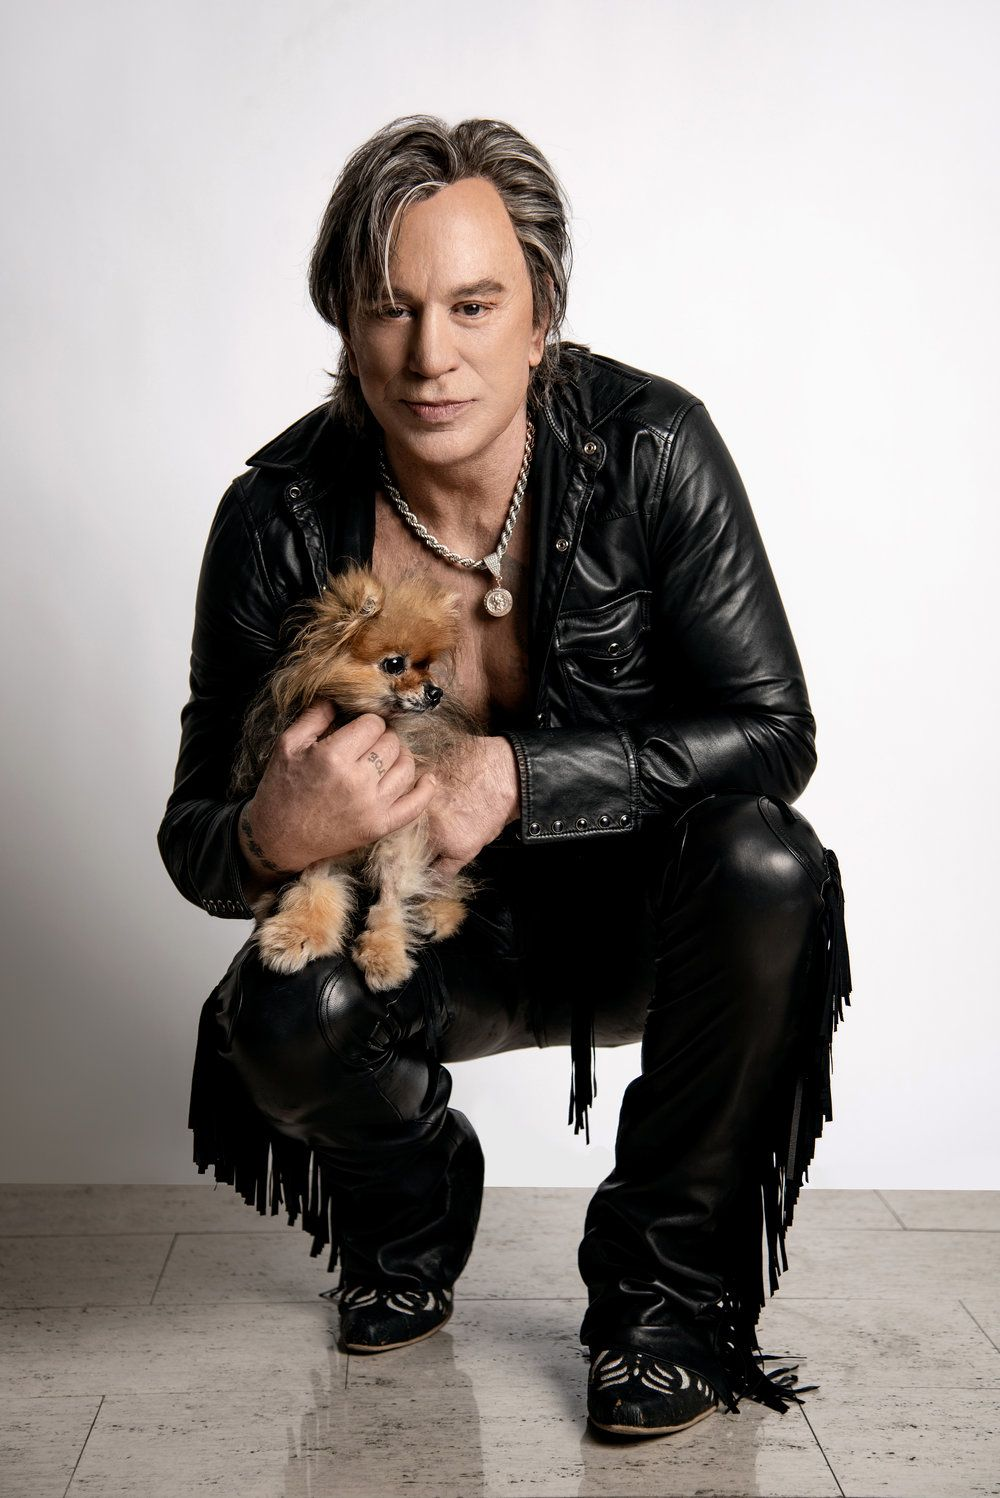 The Talk With Mickey Rourke